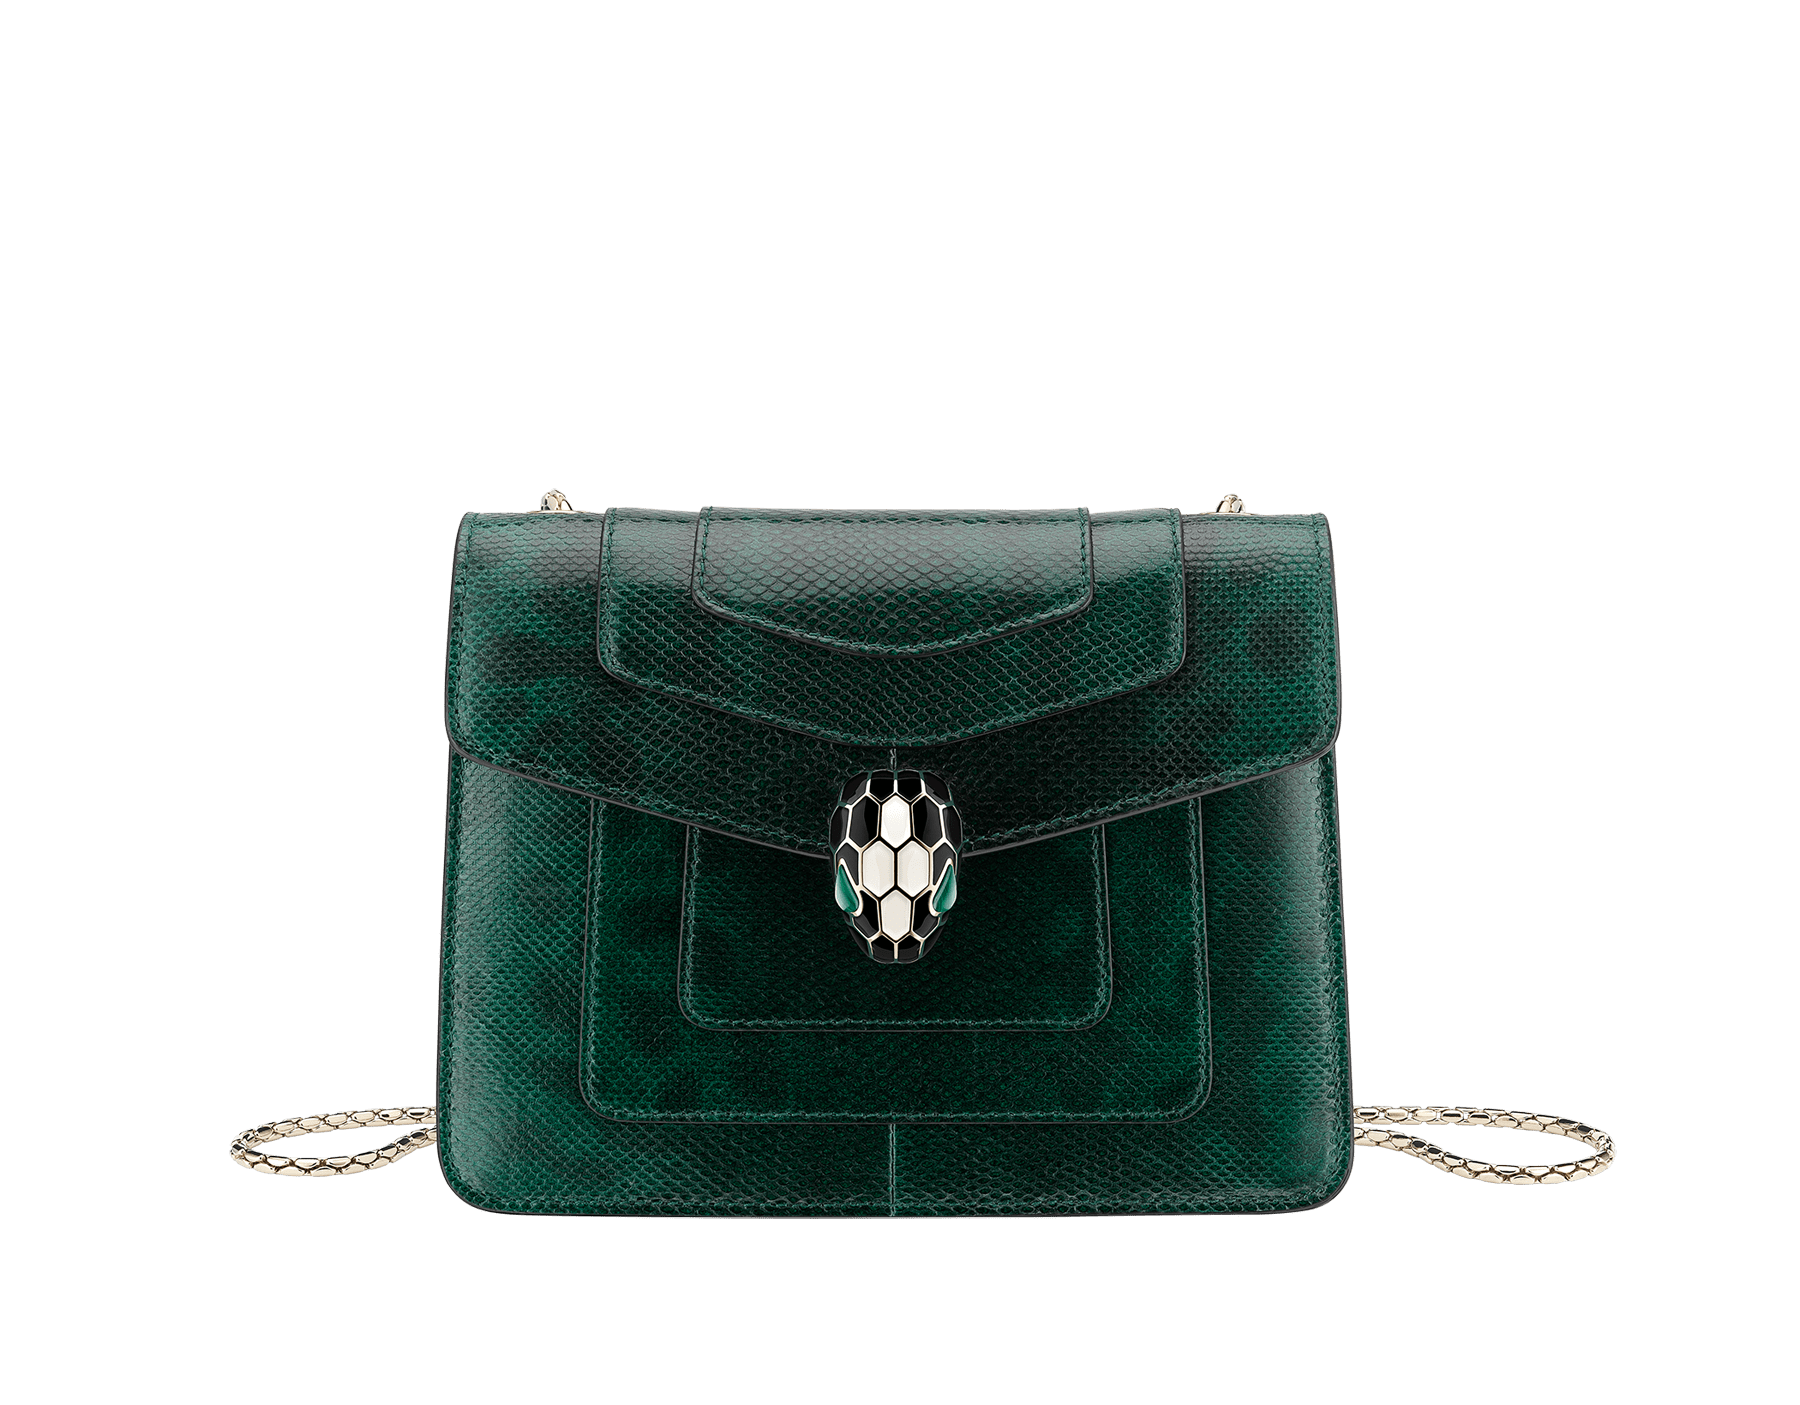 """""""Serpenti Forever"""" crossbody bag in shiny forest emerald karung skin. Iconic snakehead closure in light gold plated brass enriched with black and white enamel and green malachite eyes. 287357 image 1"""